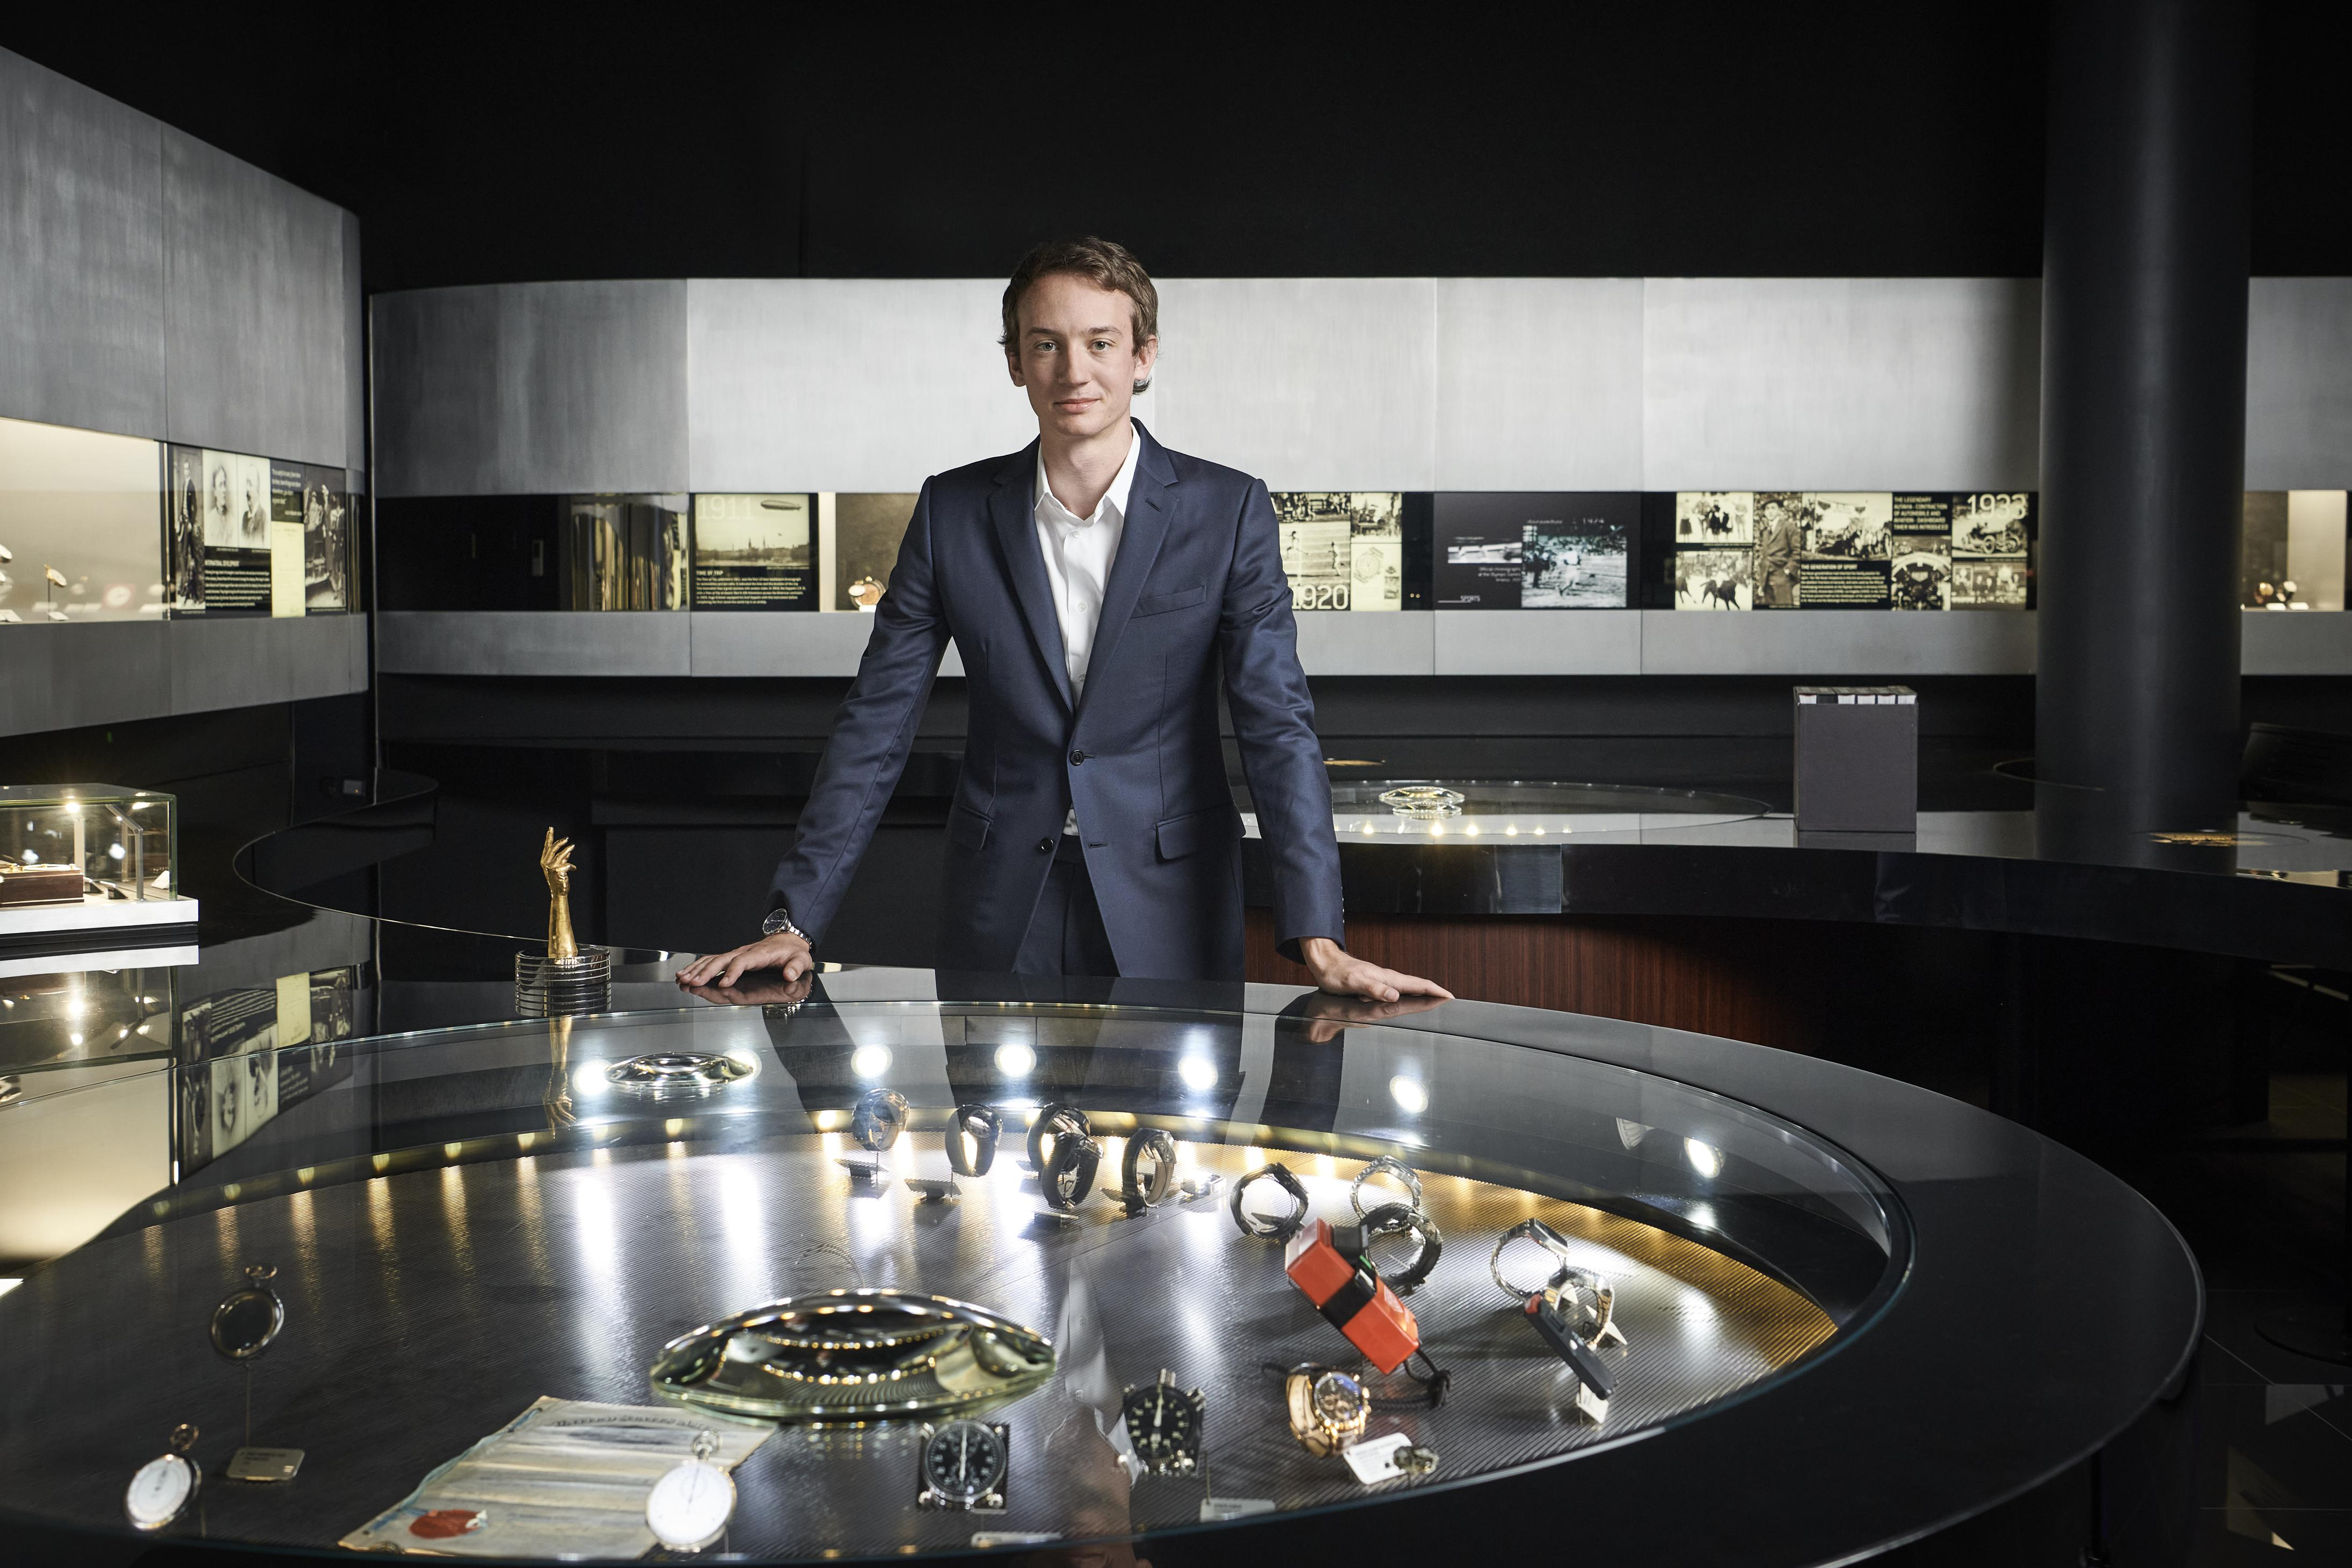 Tag Heuer CEO Frédéric Arnault says investing in the ecommerce experience has softened the blows of the 2020 pandemic.